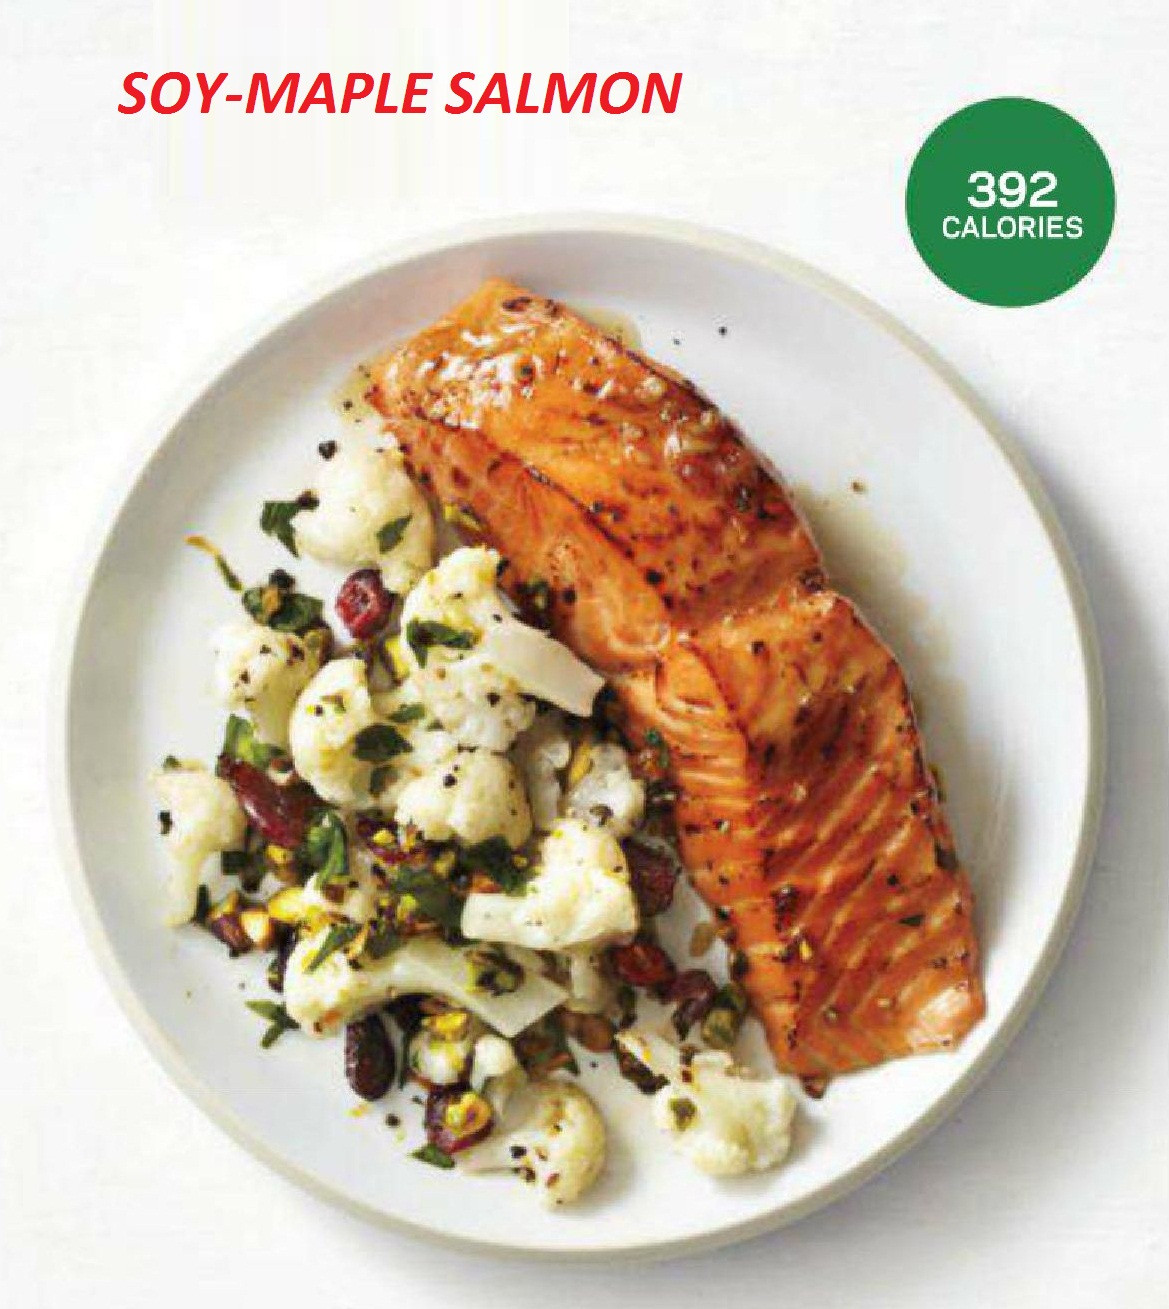 Fish Recipes Healthy  SOY MAPLE SALMON Healthy Fish Recipe 392 Calories How